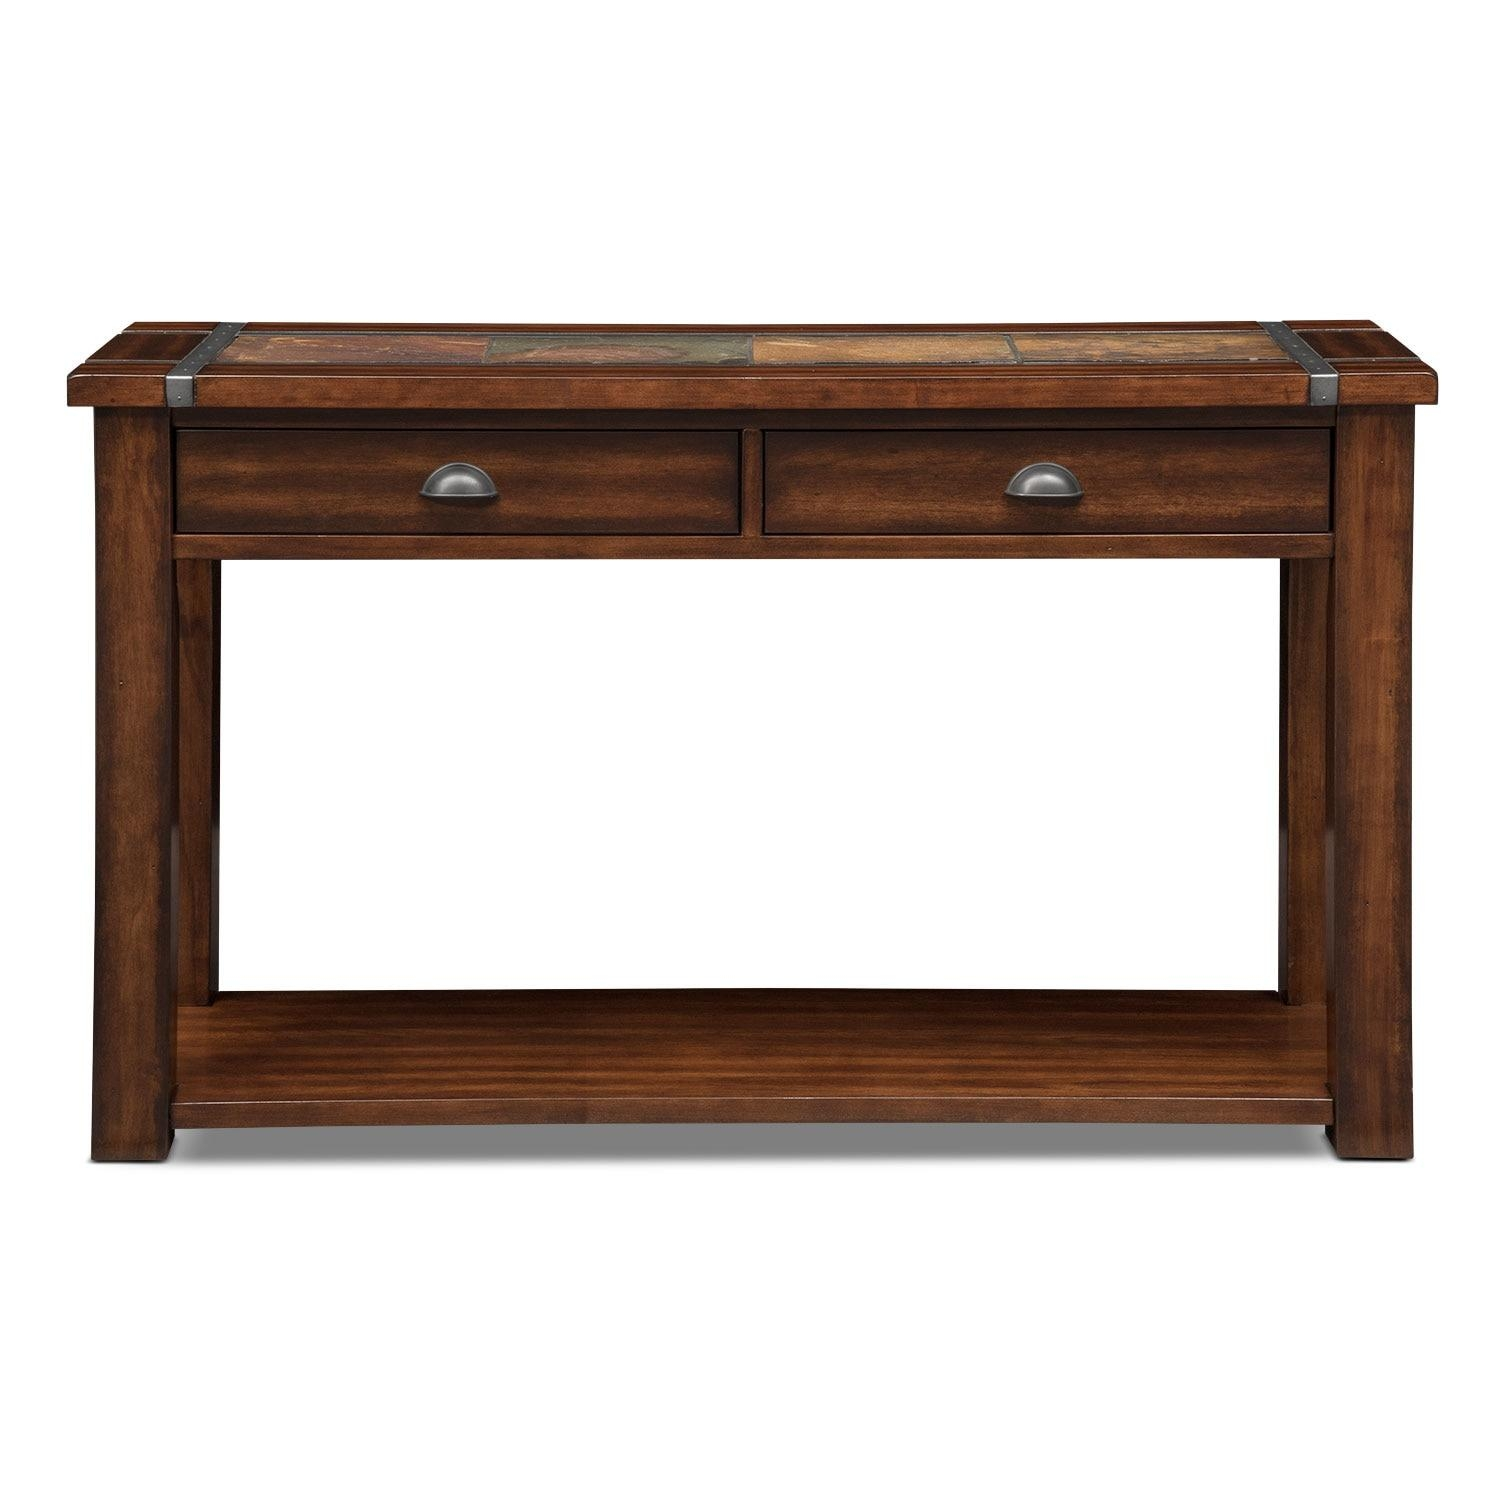 Slate Ridge Sofa Table – Cherry | Value City Furniture Within Slate Sofa Tables (View 12 of 20)